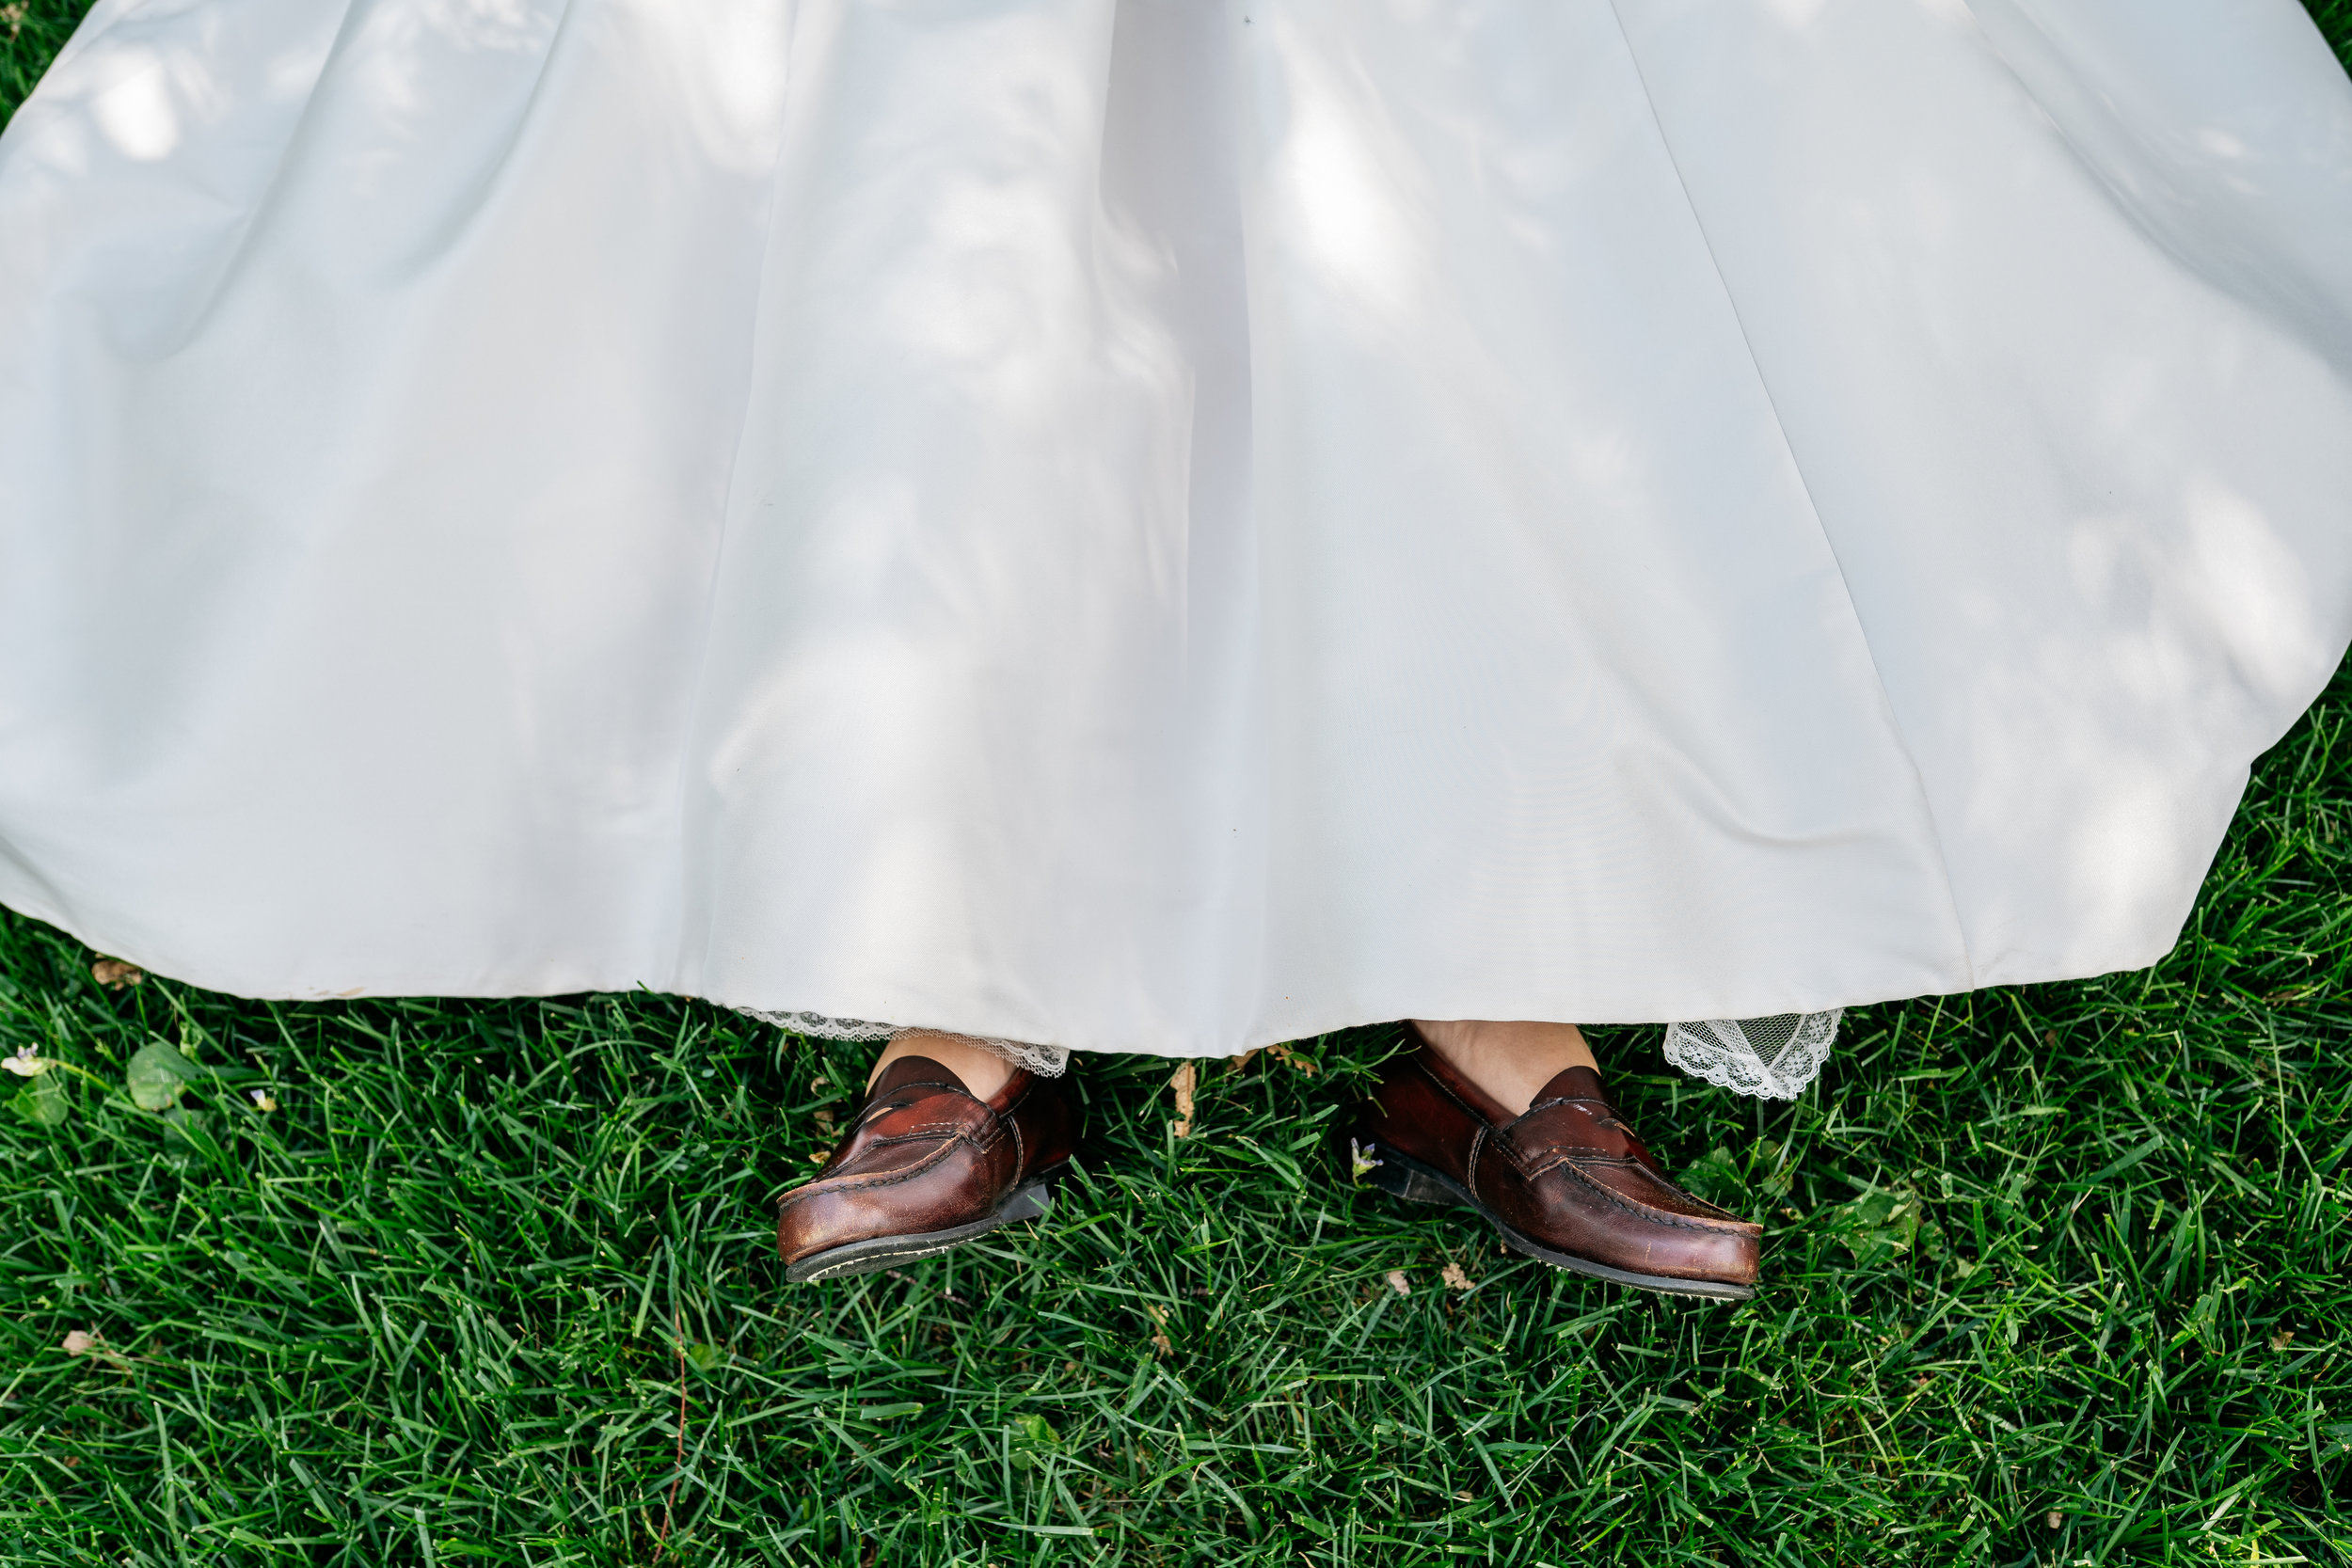 Here the bride wears penny loafers with her elegant gown. The couple take a few minutes alone to soak in their marriage on their wedding day by having a private picnic before joining their guests. Their wedding planner encouraged them to take as much time as they needed privately to celebrate and soak it in, your wedding day only happens once—make it memorable and don't rush.